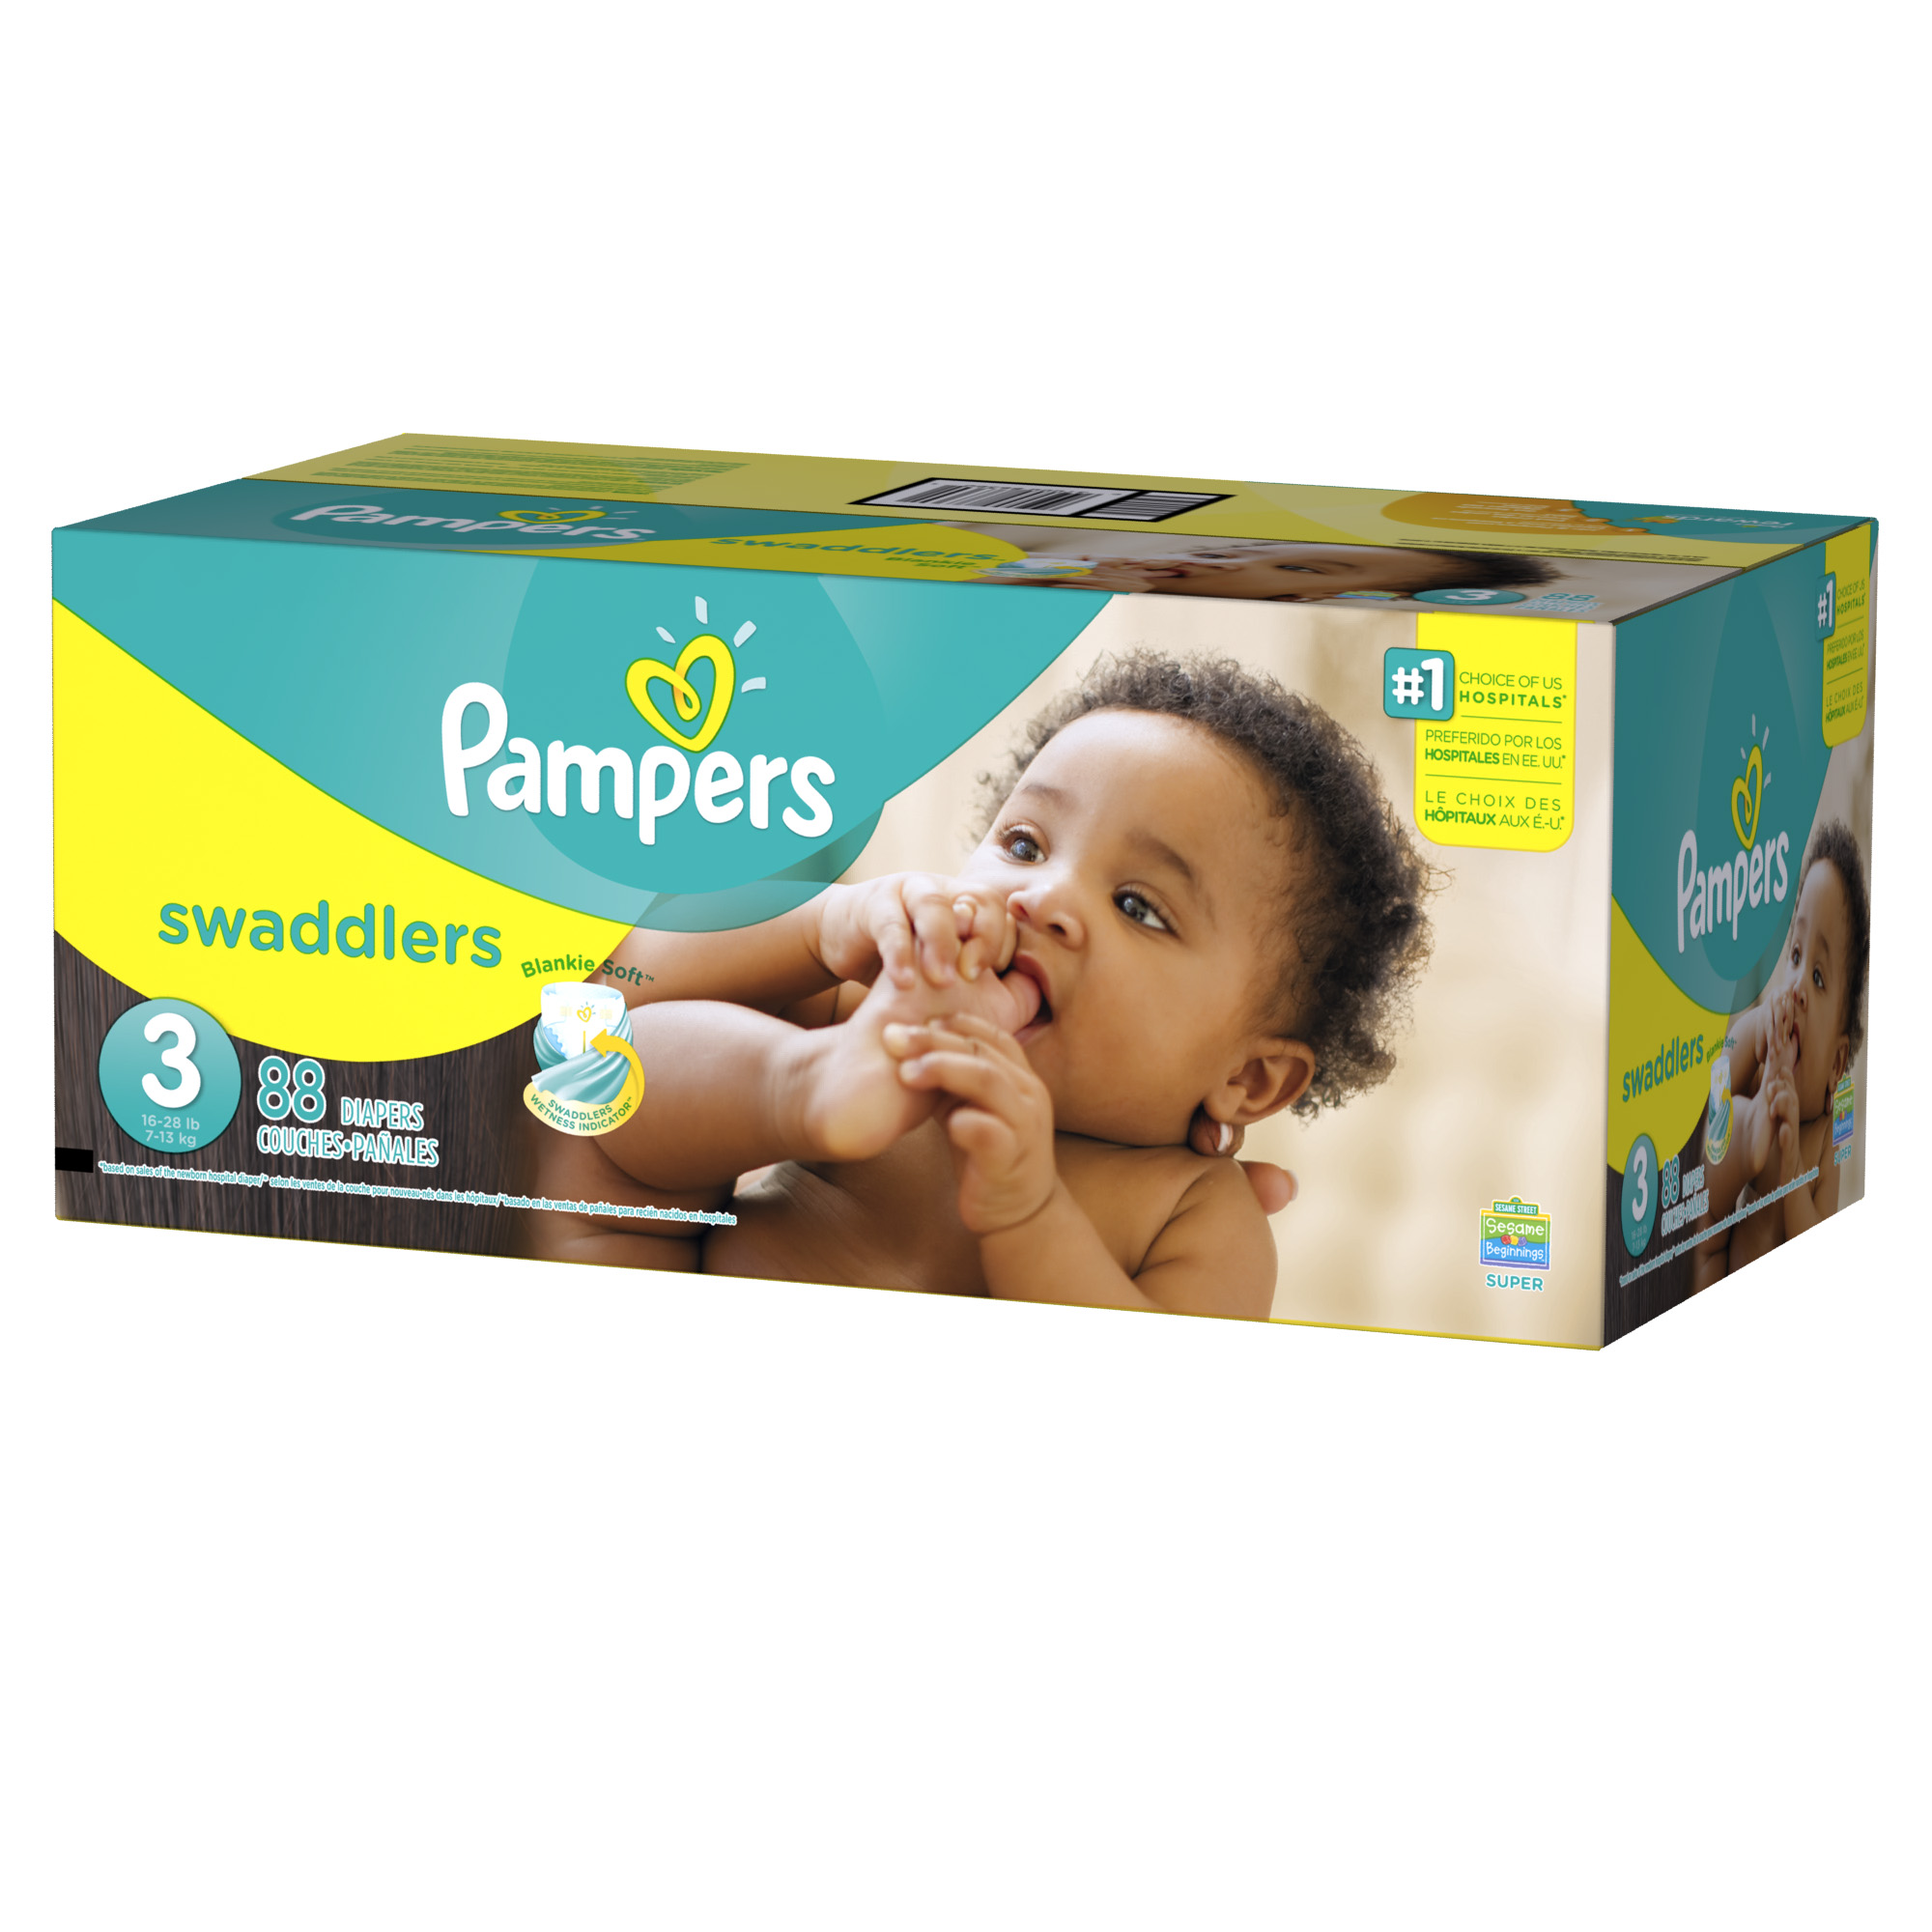 Pampers Swaddlers Diapers Size 3 88 count